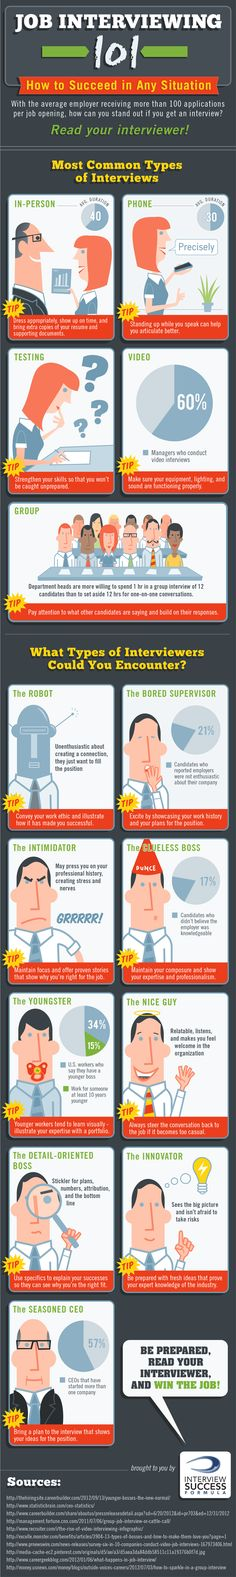 Infographic: Job Interviewing 101